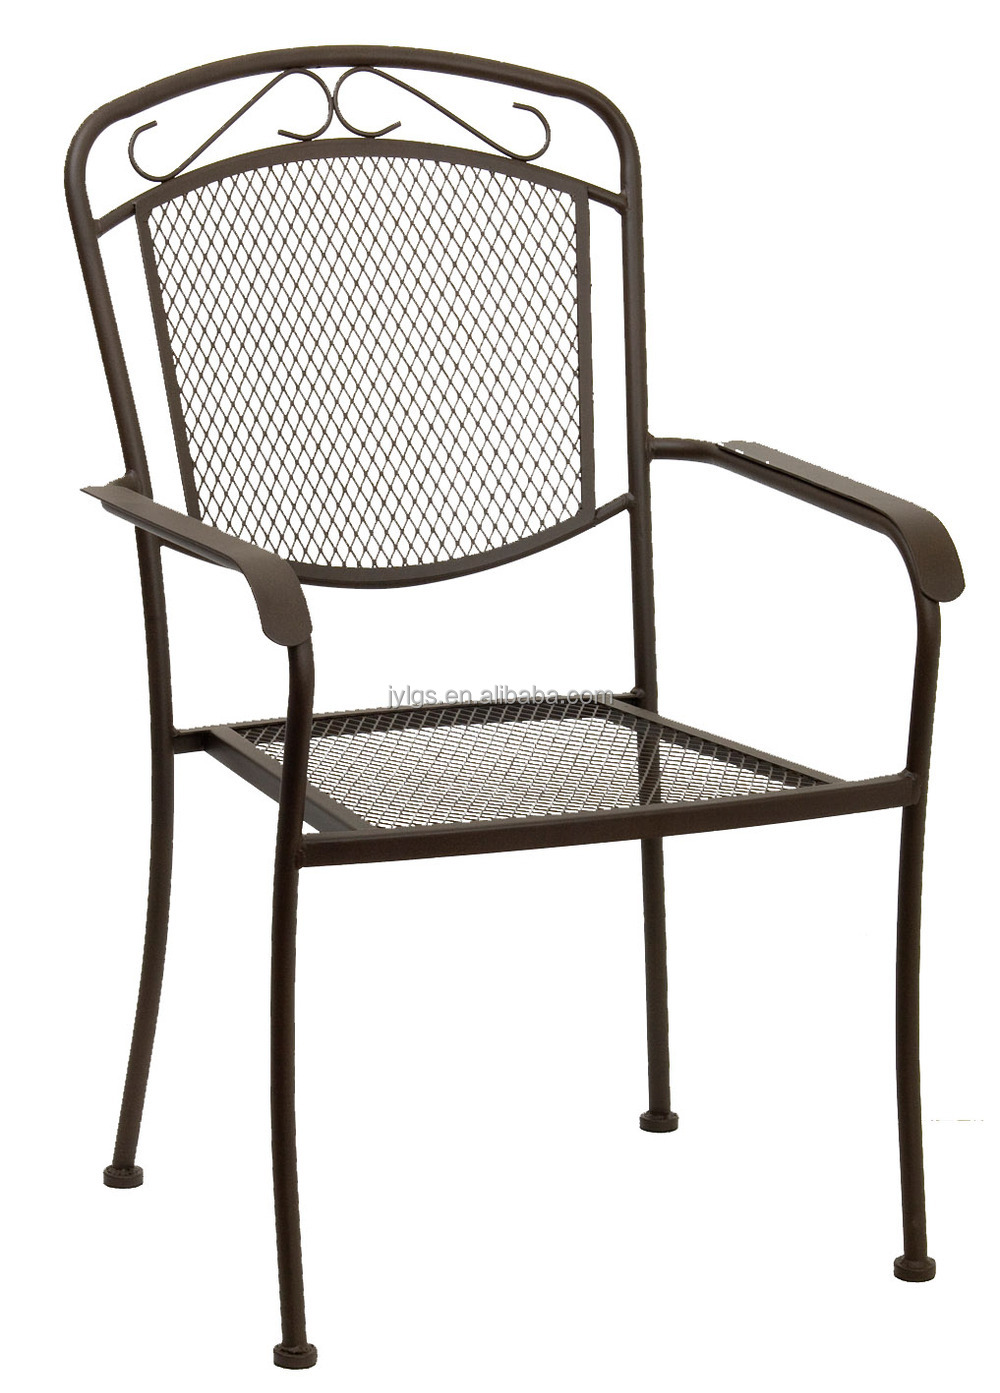 metal mesh dining round table and chairs outdoor furniture balcony buy restaurant dining. Black Bedroom Furniture Sets. Home Design Ideas